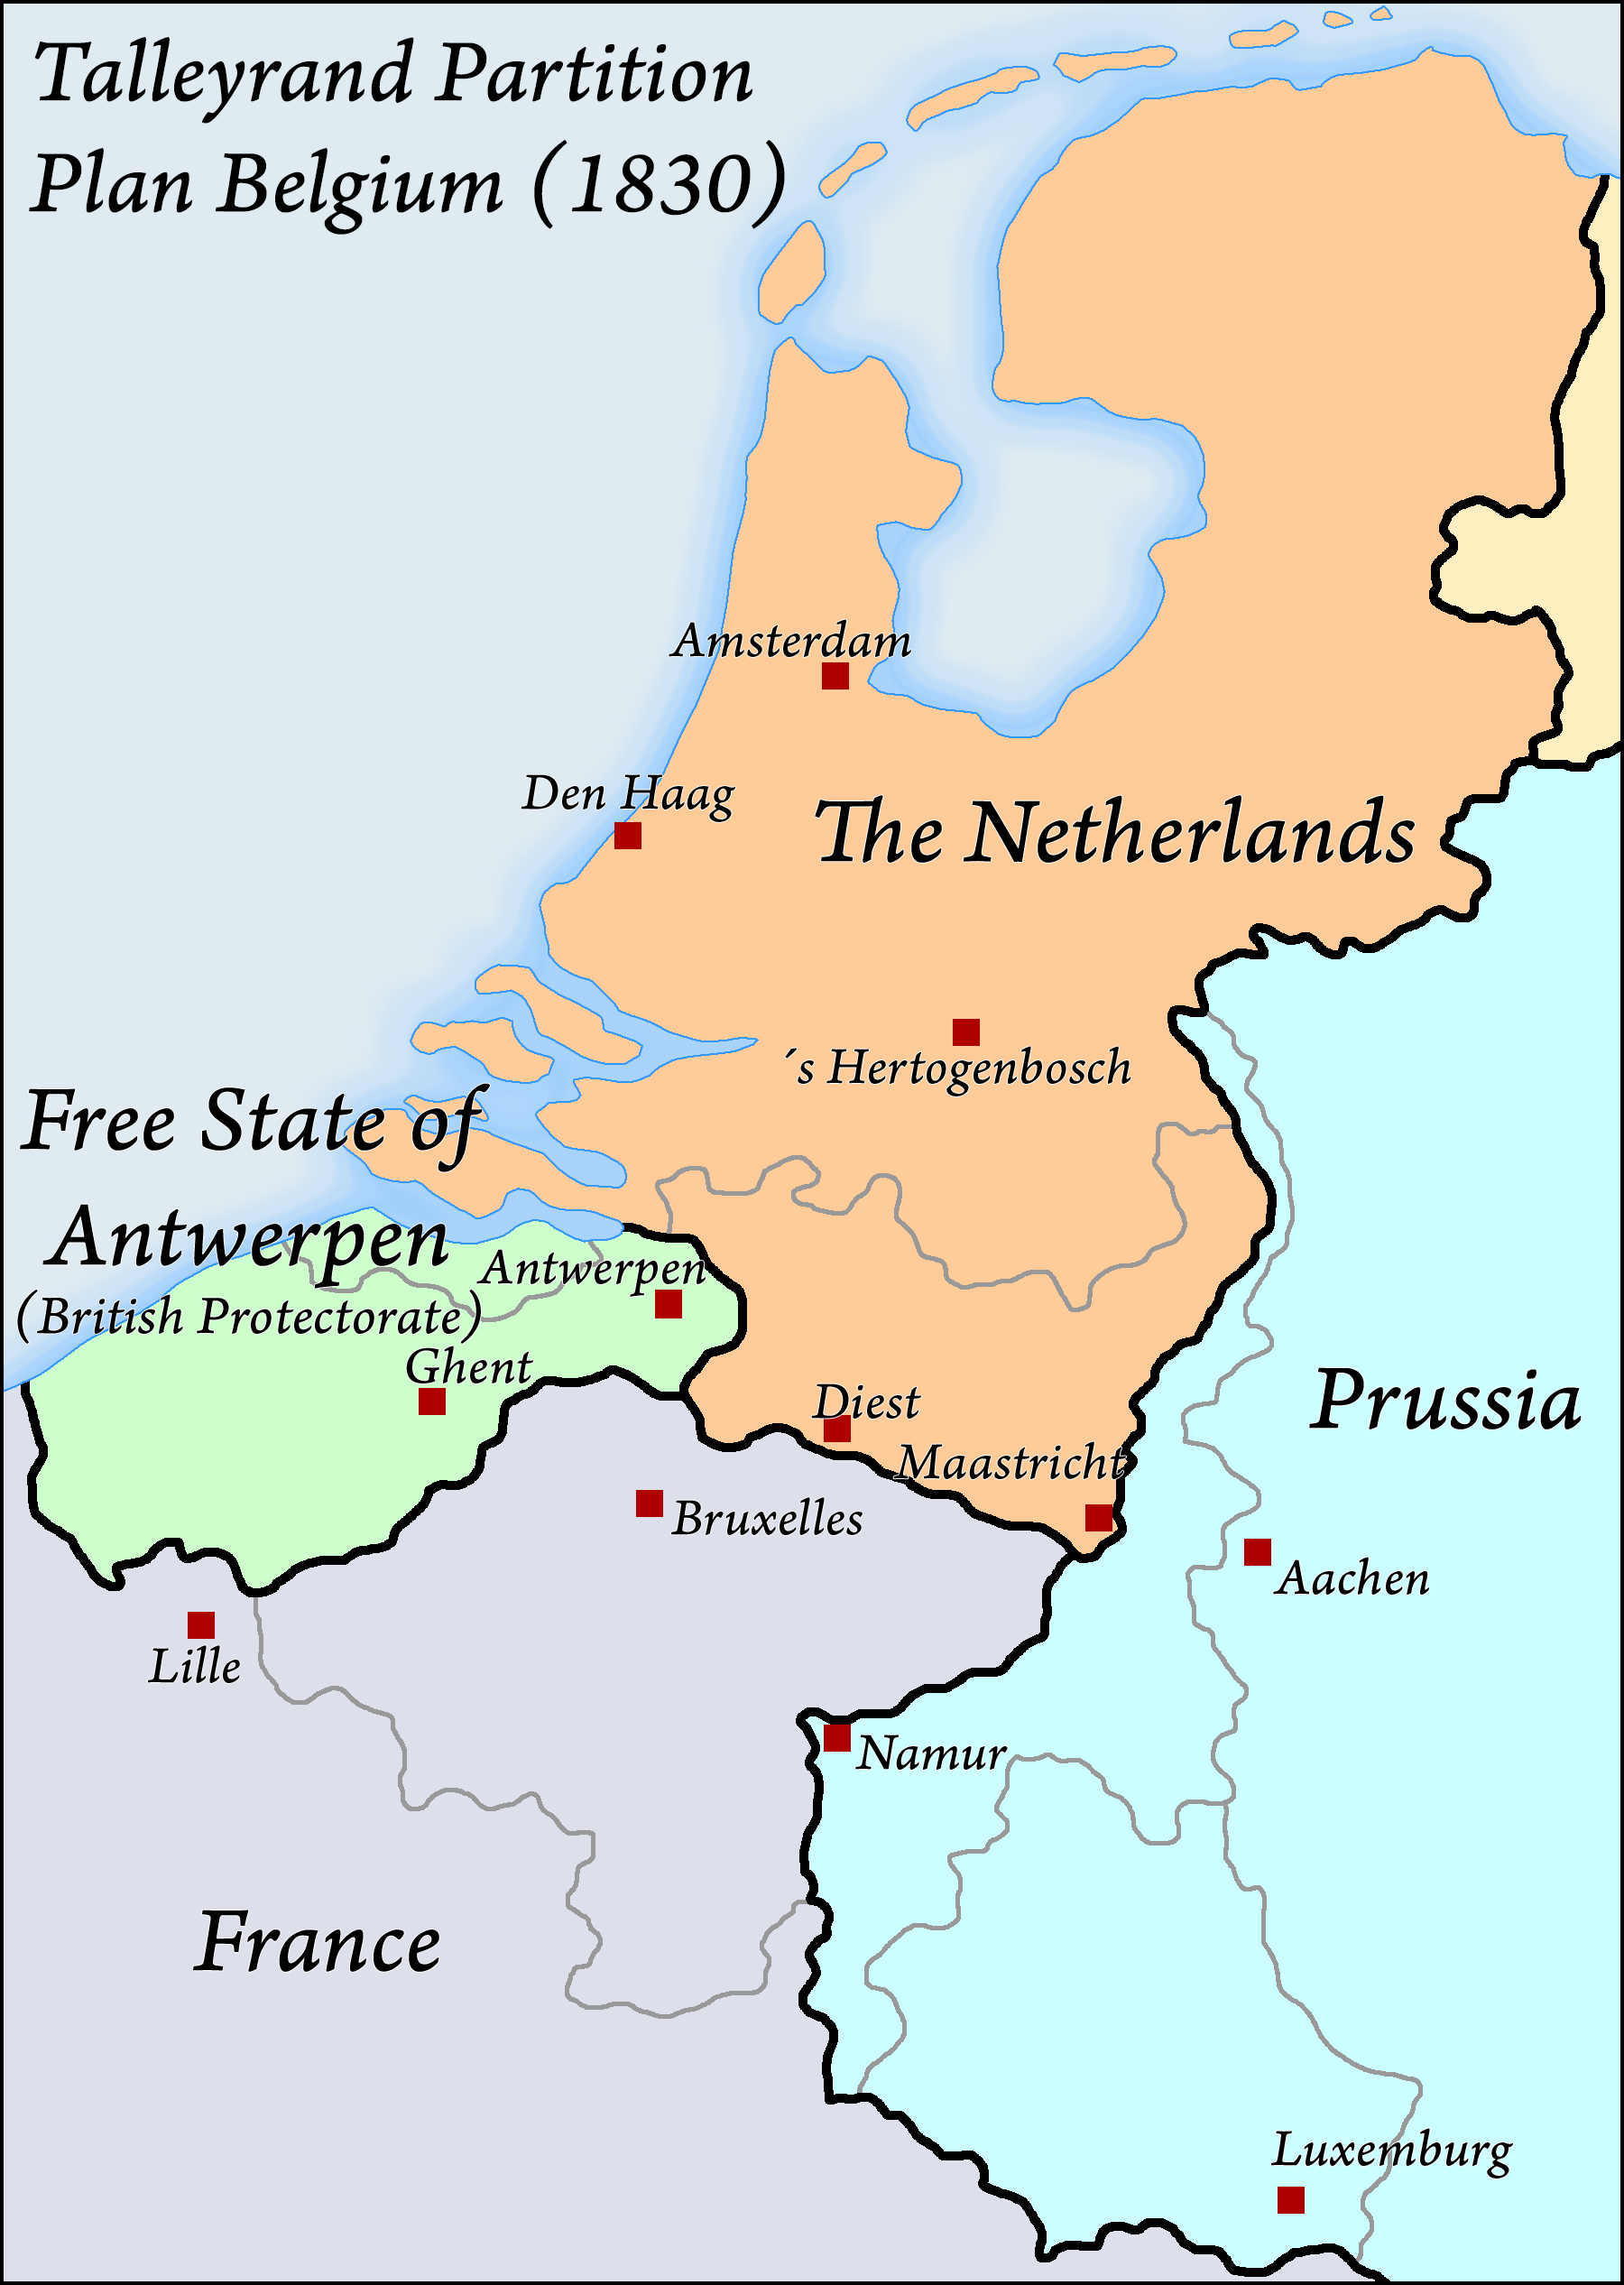 talleyrand plan for the partition of belgium 1830 by arminius1871